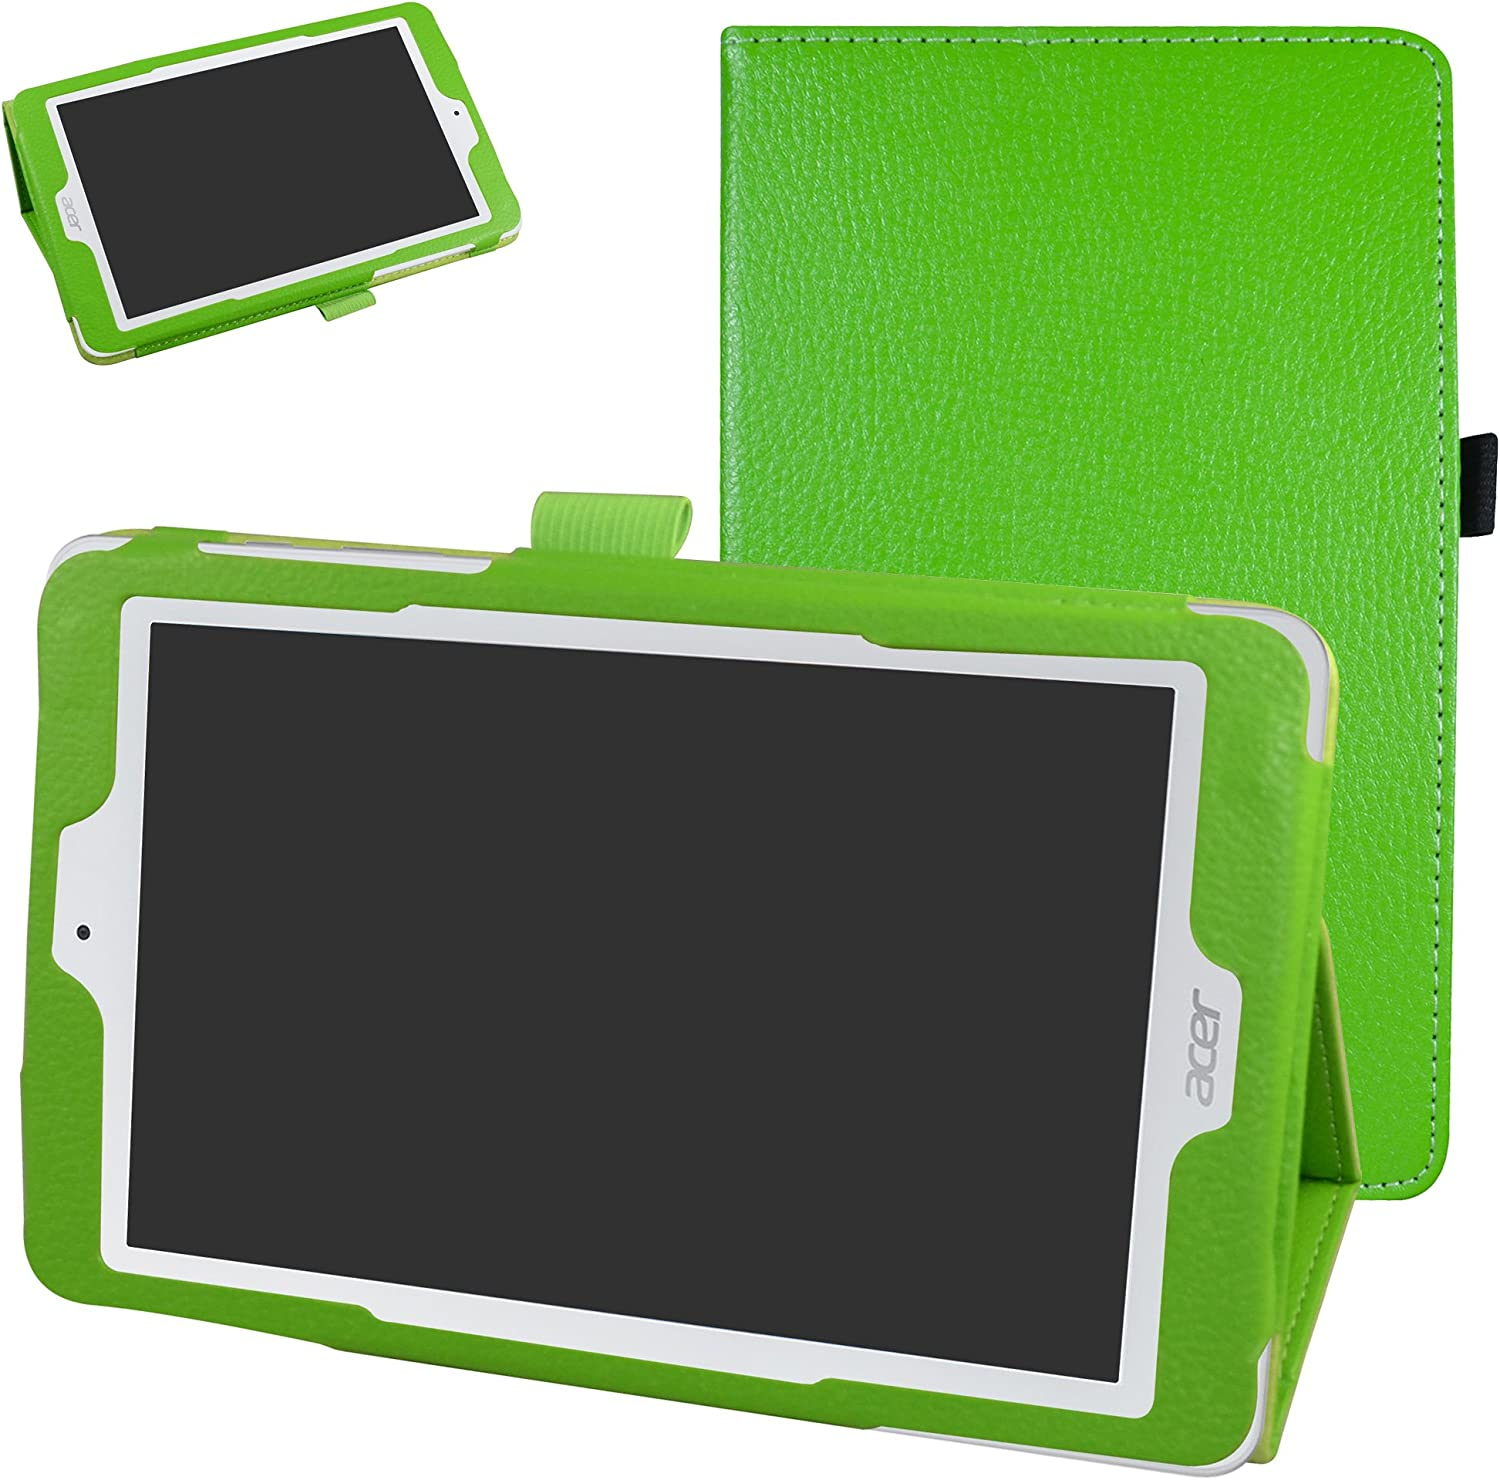 "Acer Iconia One 8 B1-850 Case,Mama Mouth PU Leather Folio 2-Folding Stand Cover with Stylus Holder for 8"" Acer Iconia One 8 B1-850 Android Tablet,Green"